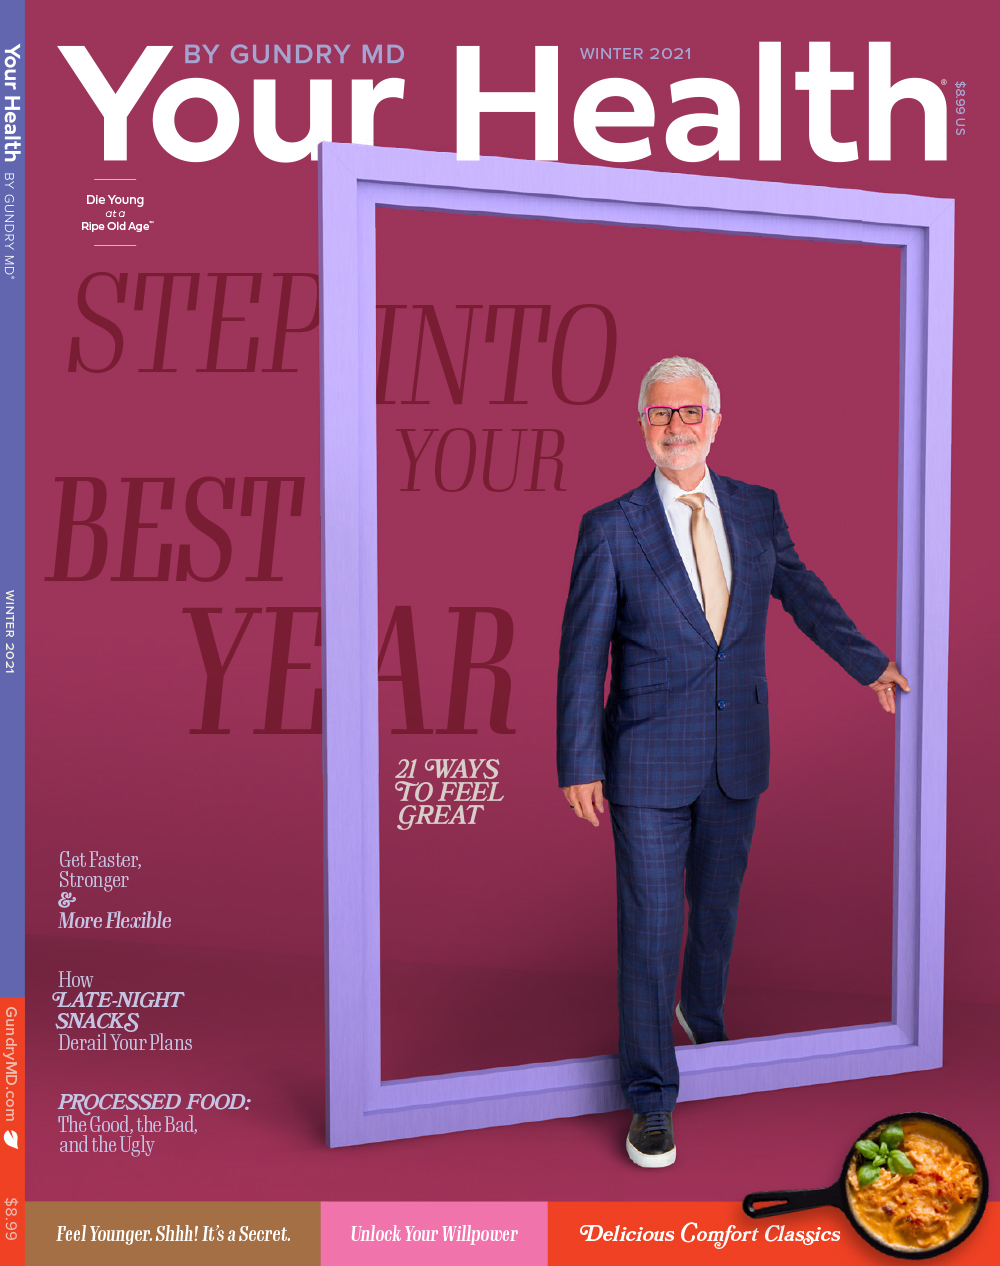 Your Health: Issue 7 Final Cover